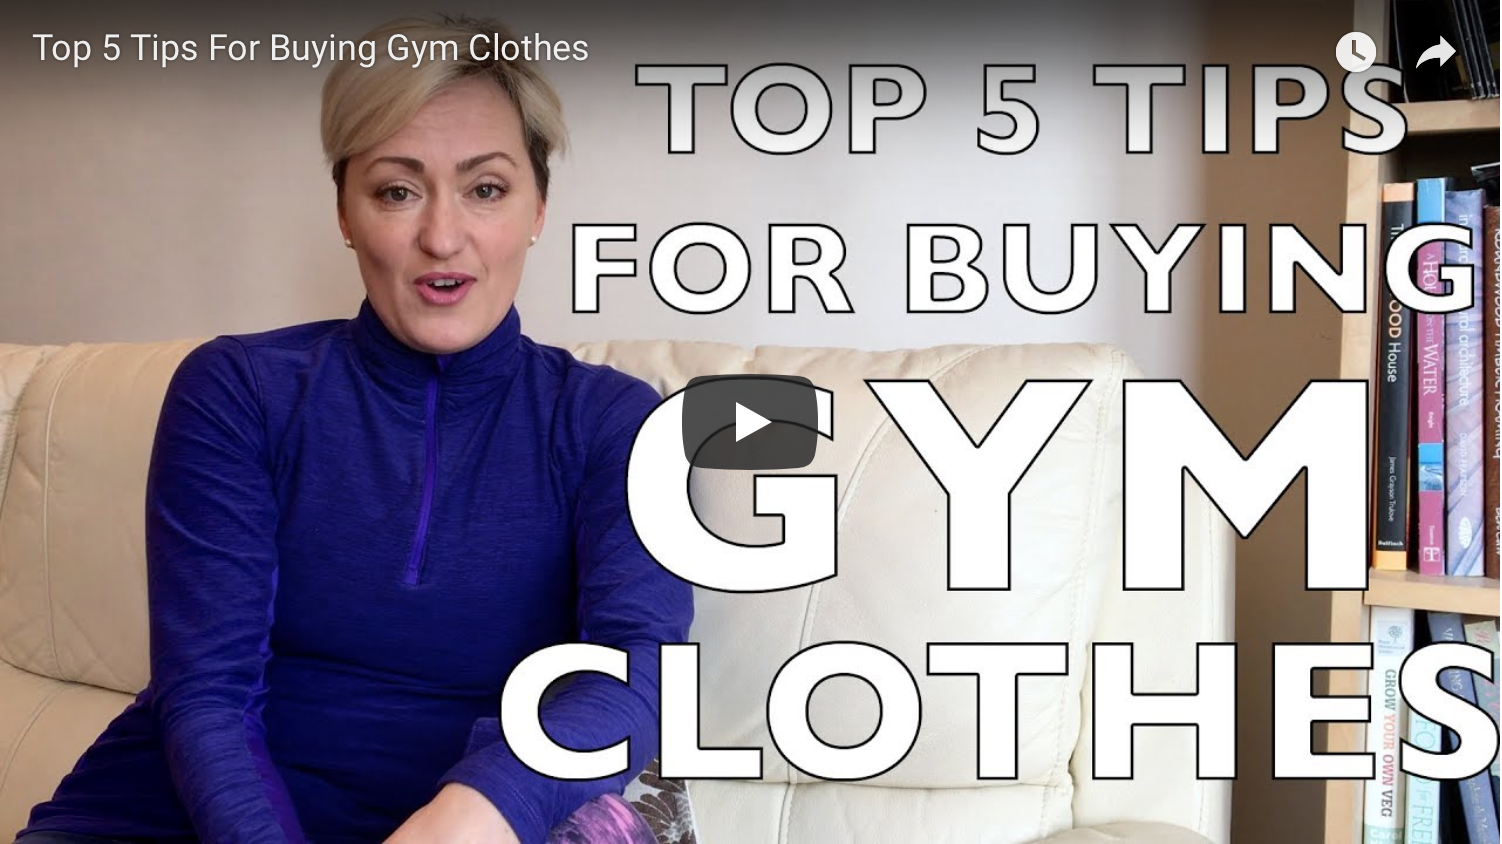 Top 5 Tips For Buying Gym Clothes